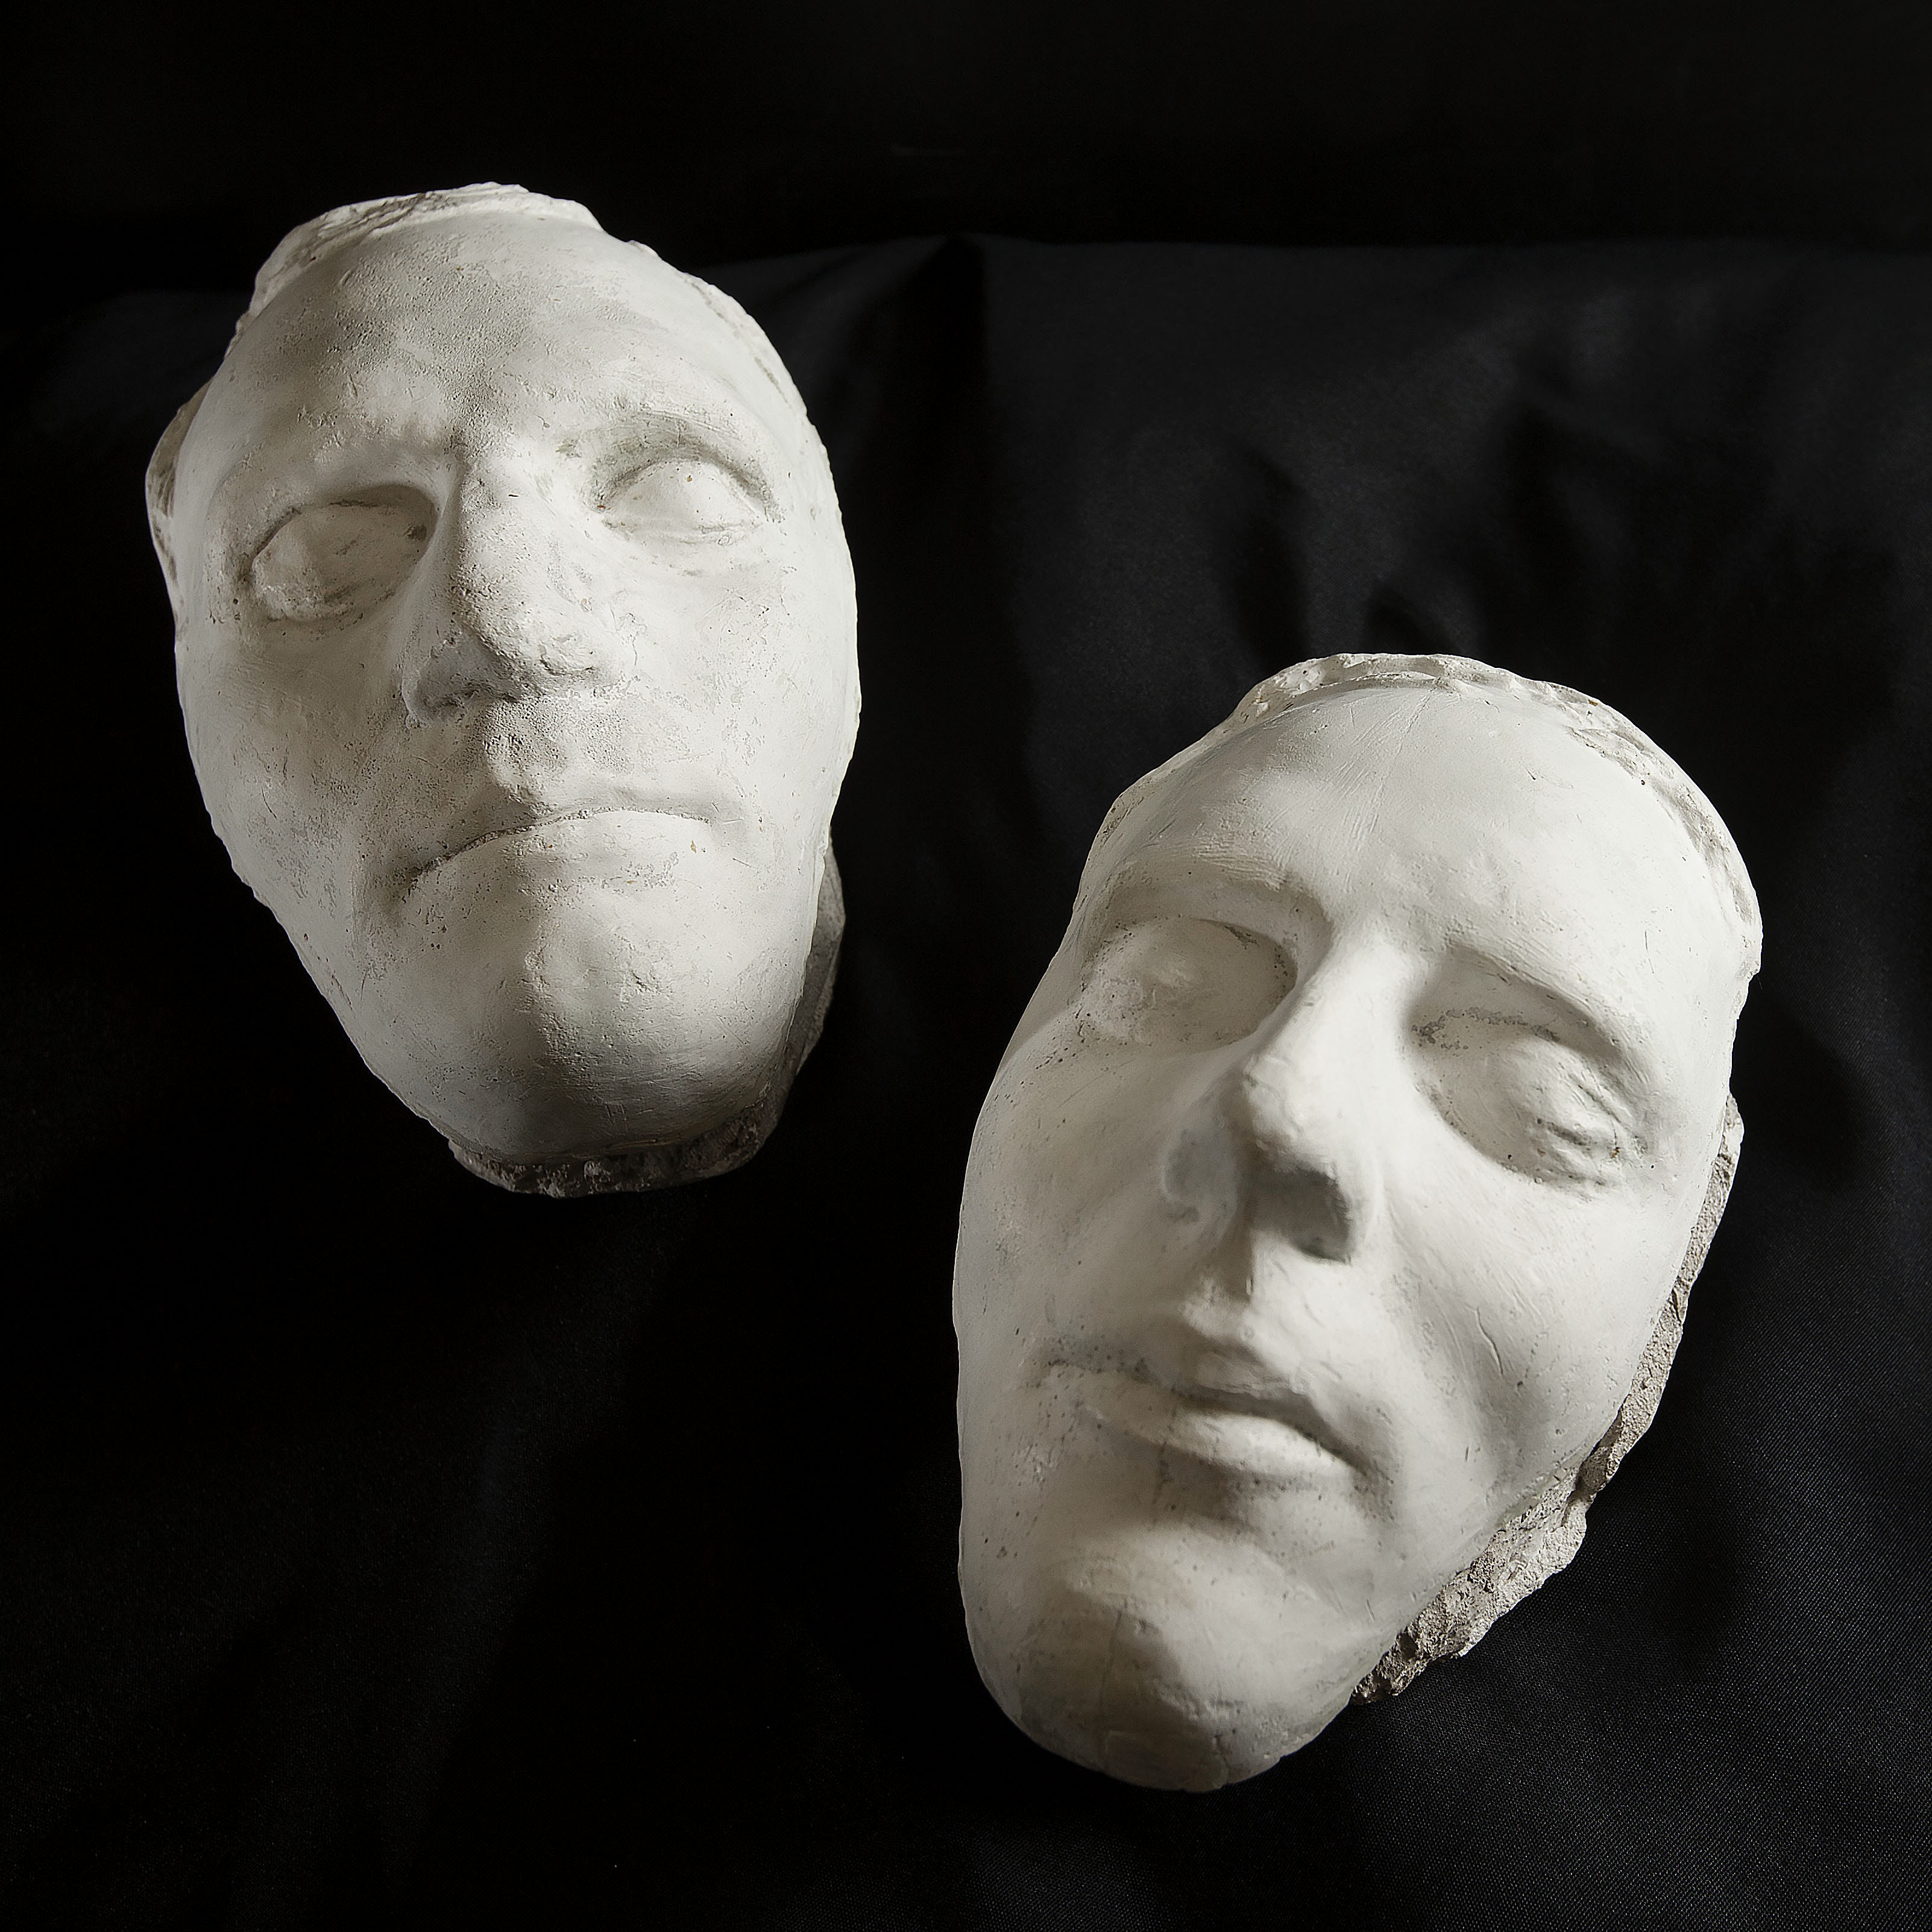 The Pedestal death masks of Hyrum and Joseph Smith are photographed at the Church History Museum in Salt Lake City on Thursday, June 13, 2019.